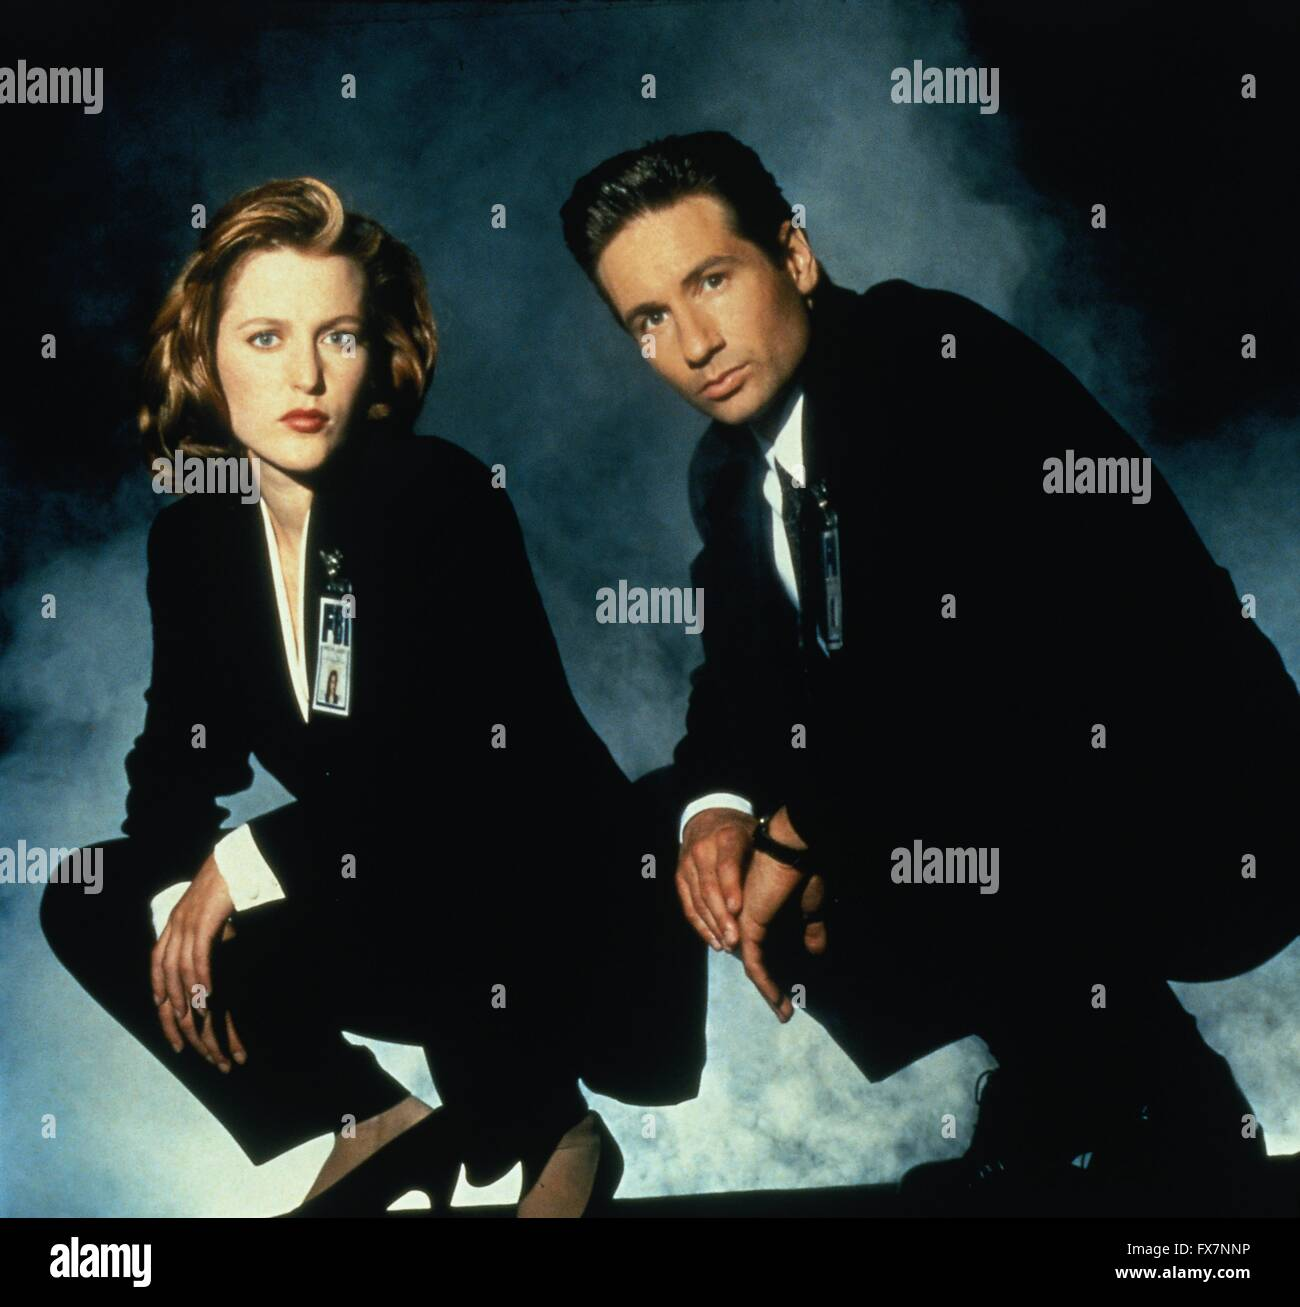 The X Files TV Series 1993 - 2002 USA 1995 Season 3 Created by Chris Carter David Duchovny , Gillian Anderson - Stock Image